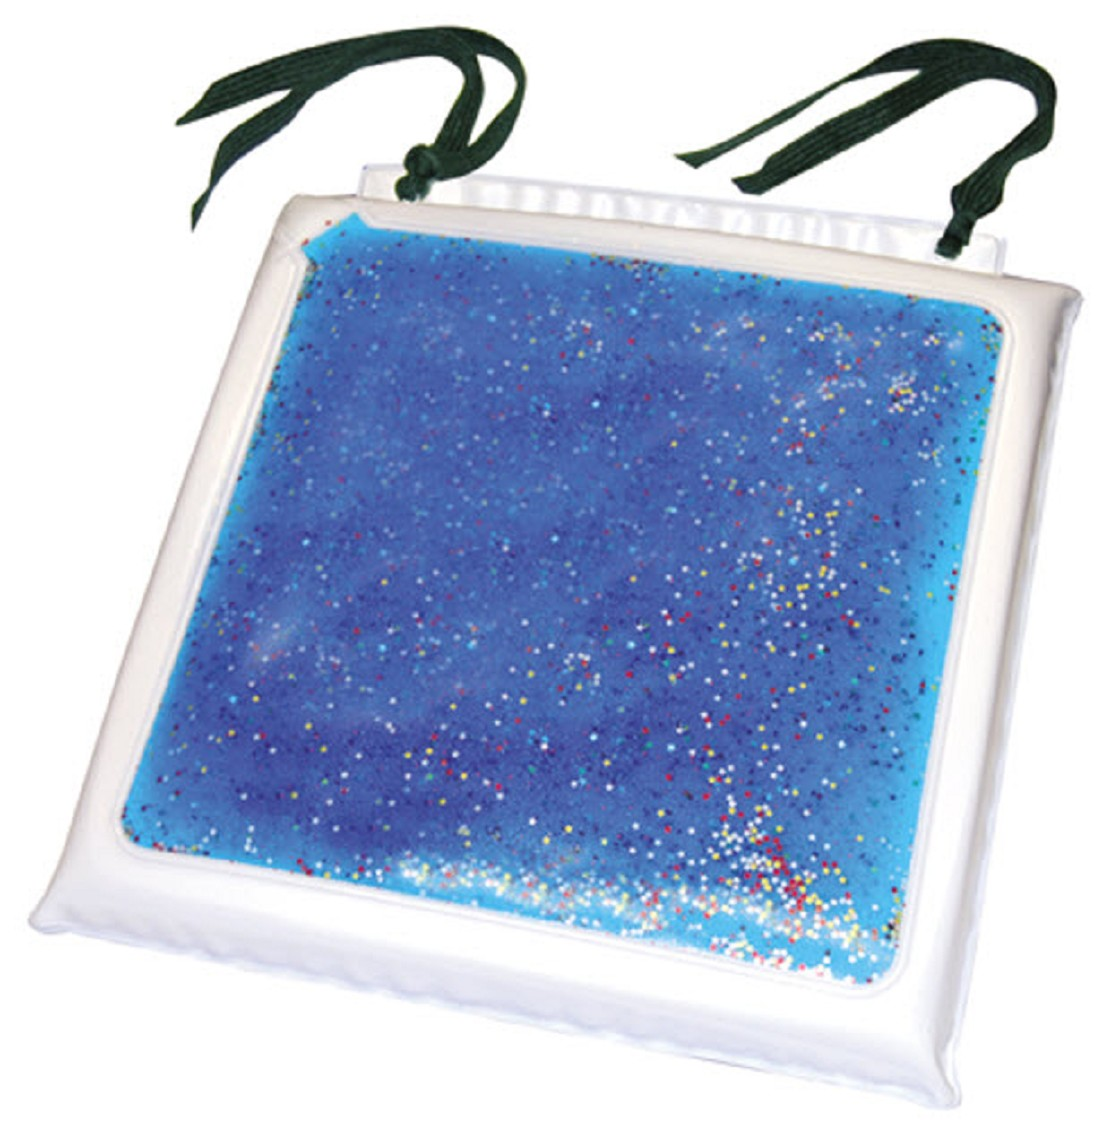 Water bed for patients - Skil Care Starry Night Gel Foam Cushions